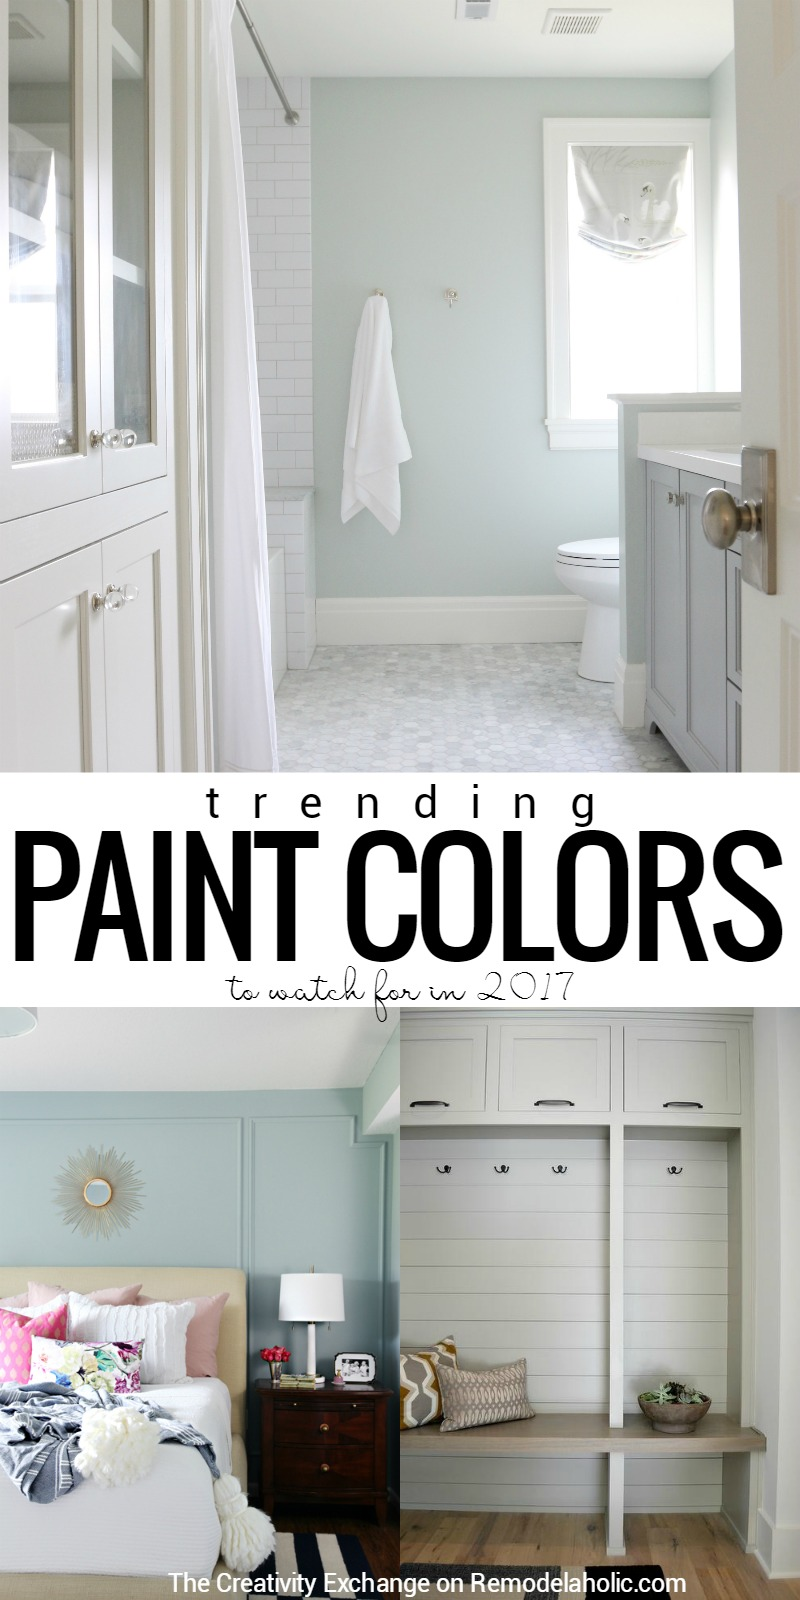 Popular and trending paint colors Tips